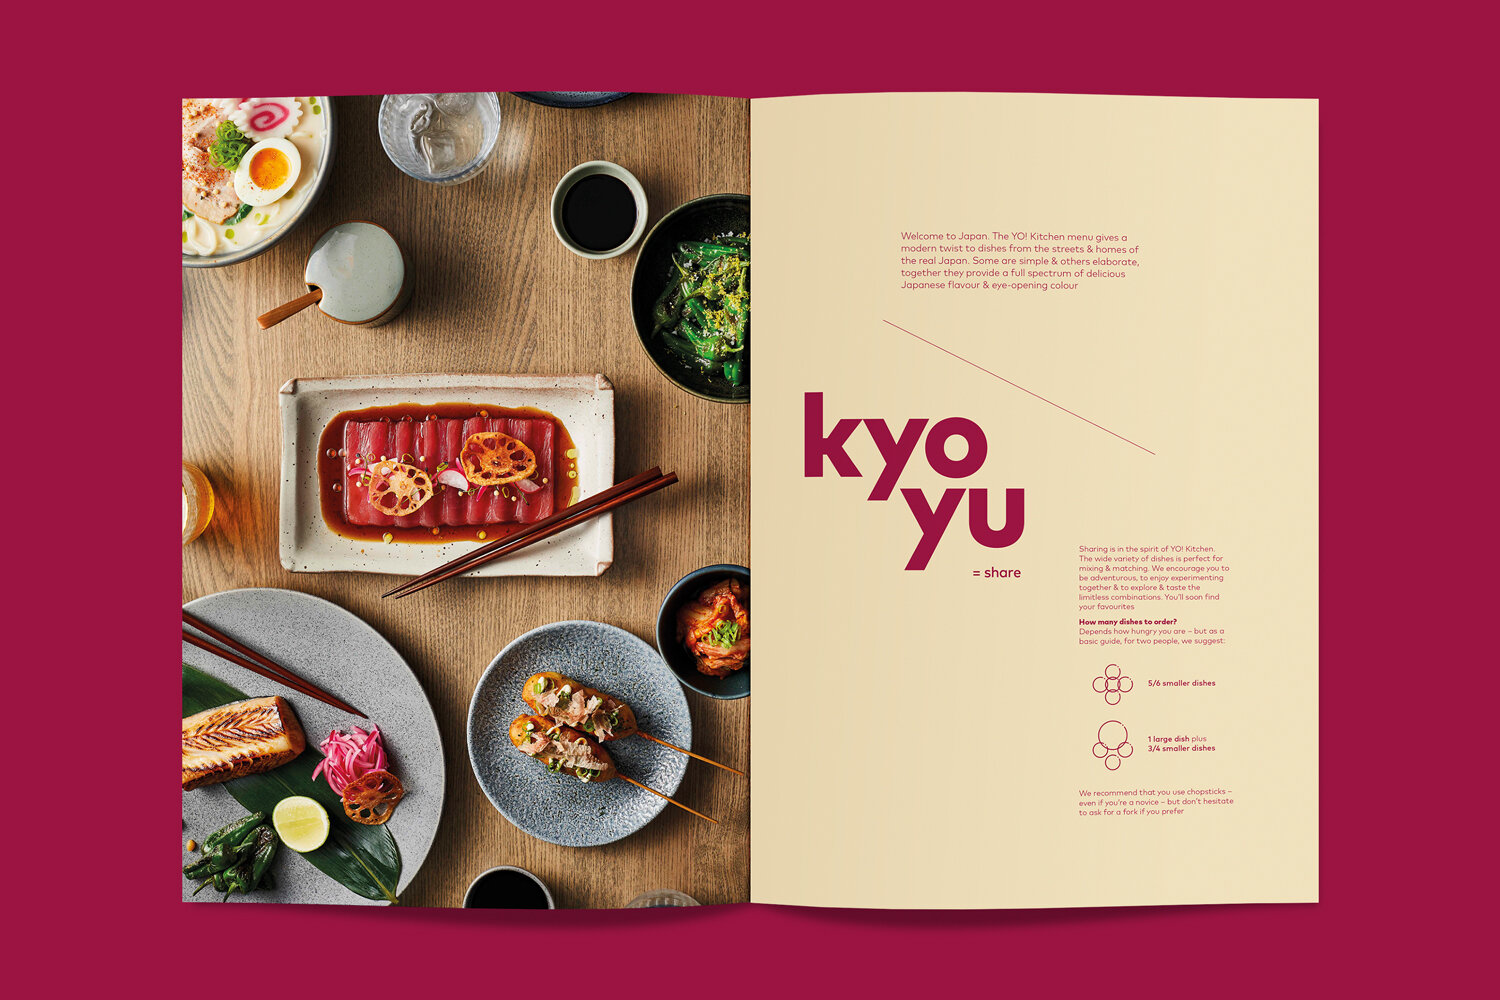 YO! Kitchen main menu welcome message